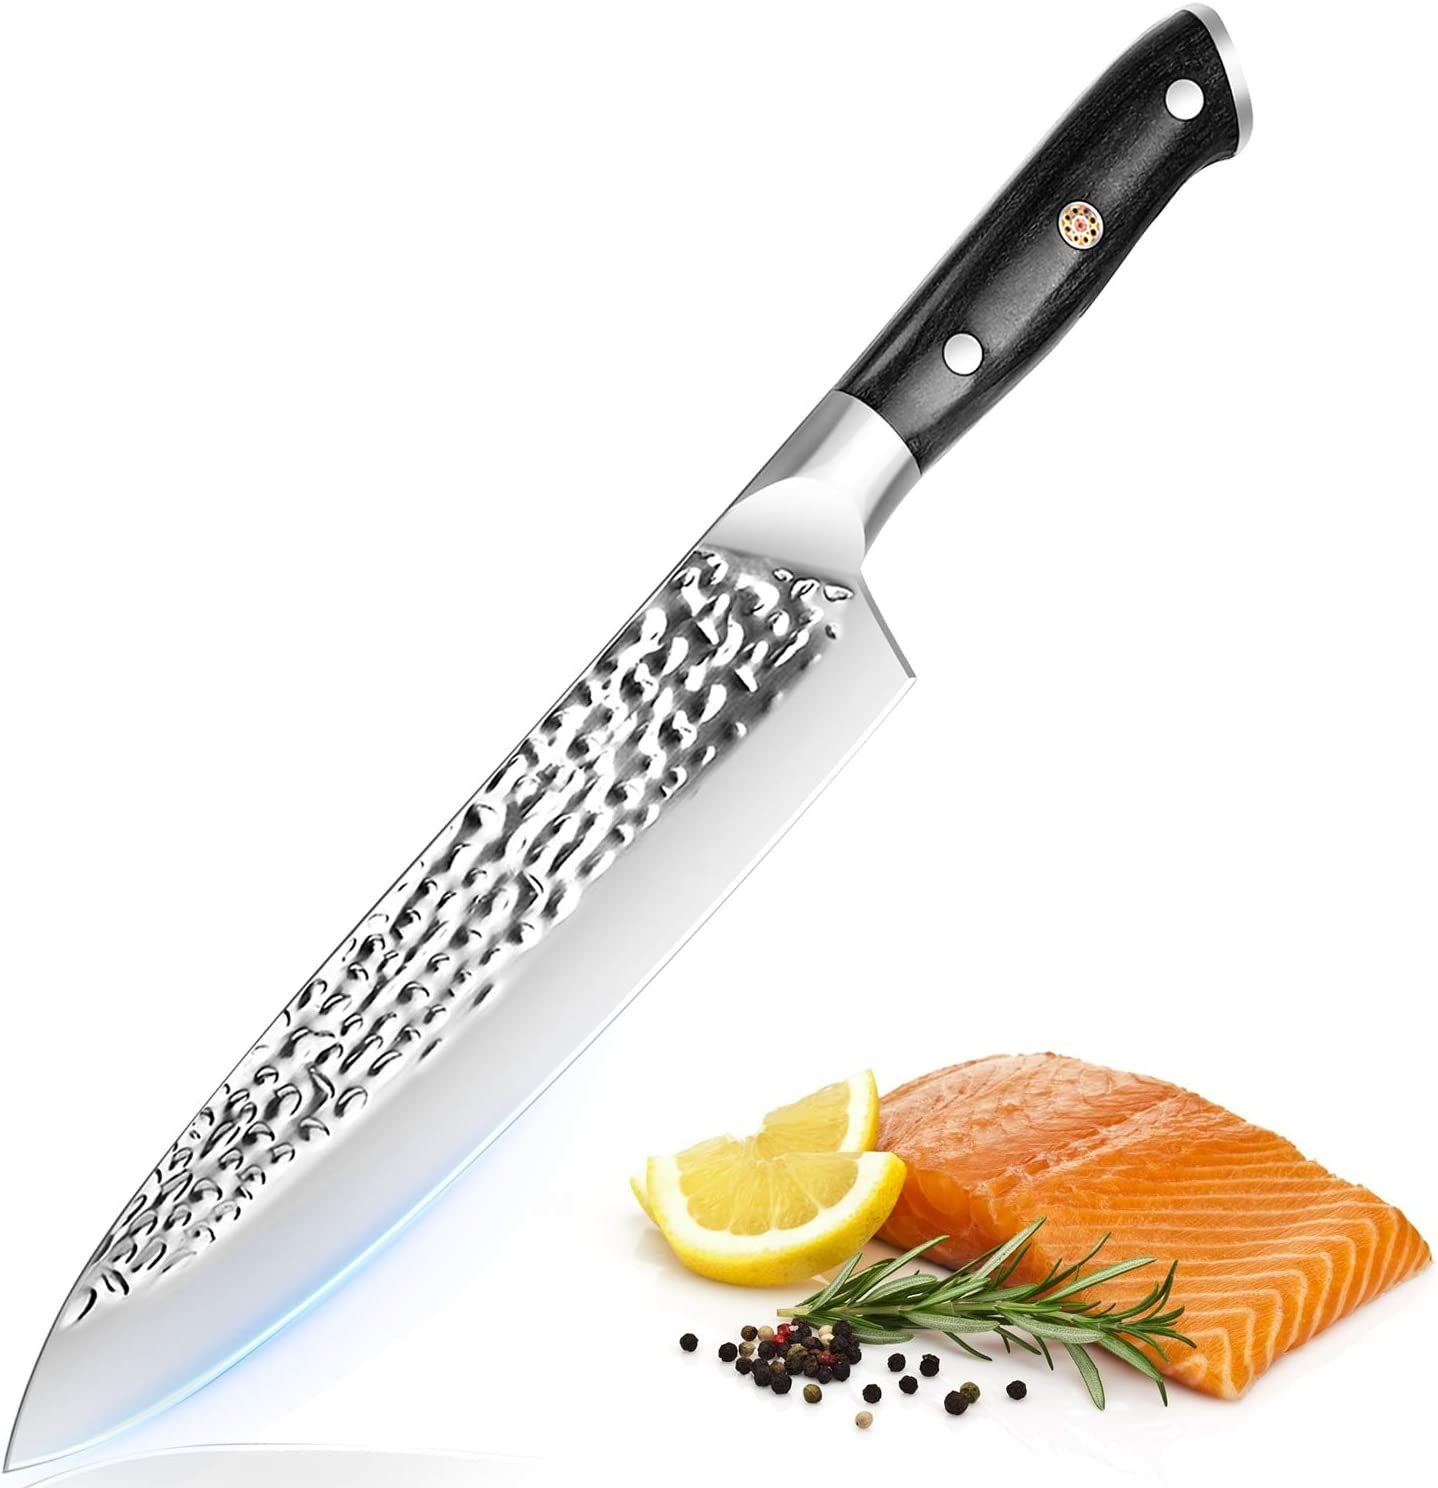 Ranking TOP15 Chef Knife 8-inch Ranking TOP16 Kitchen Sharp Cooking Carbon High